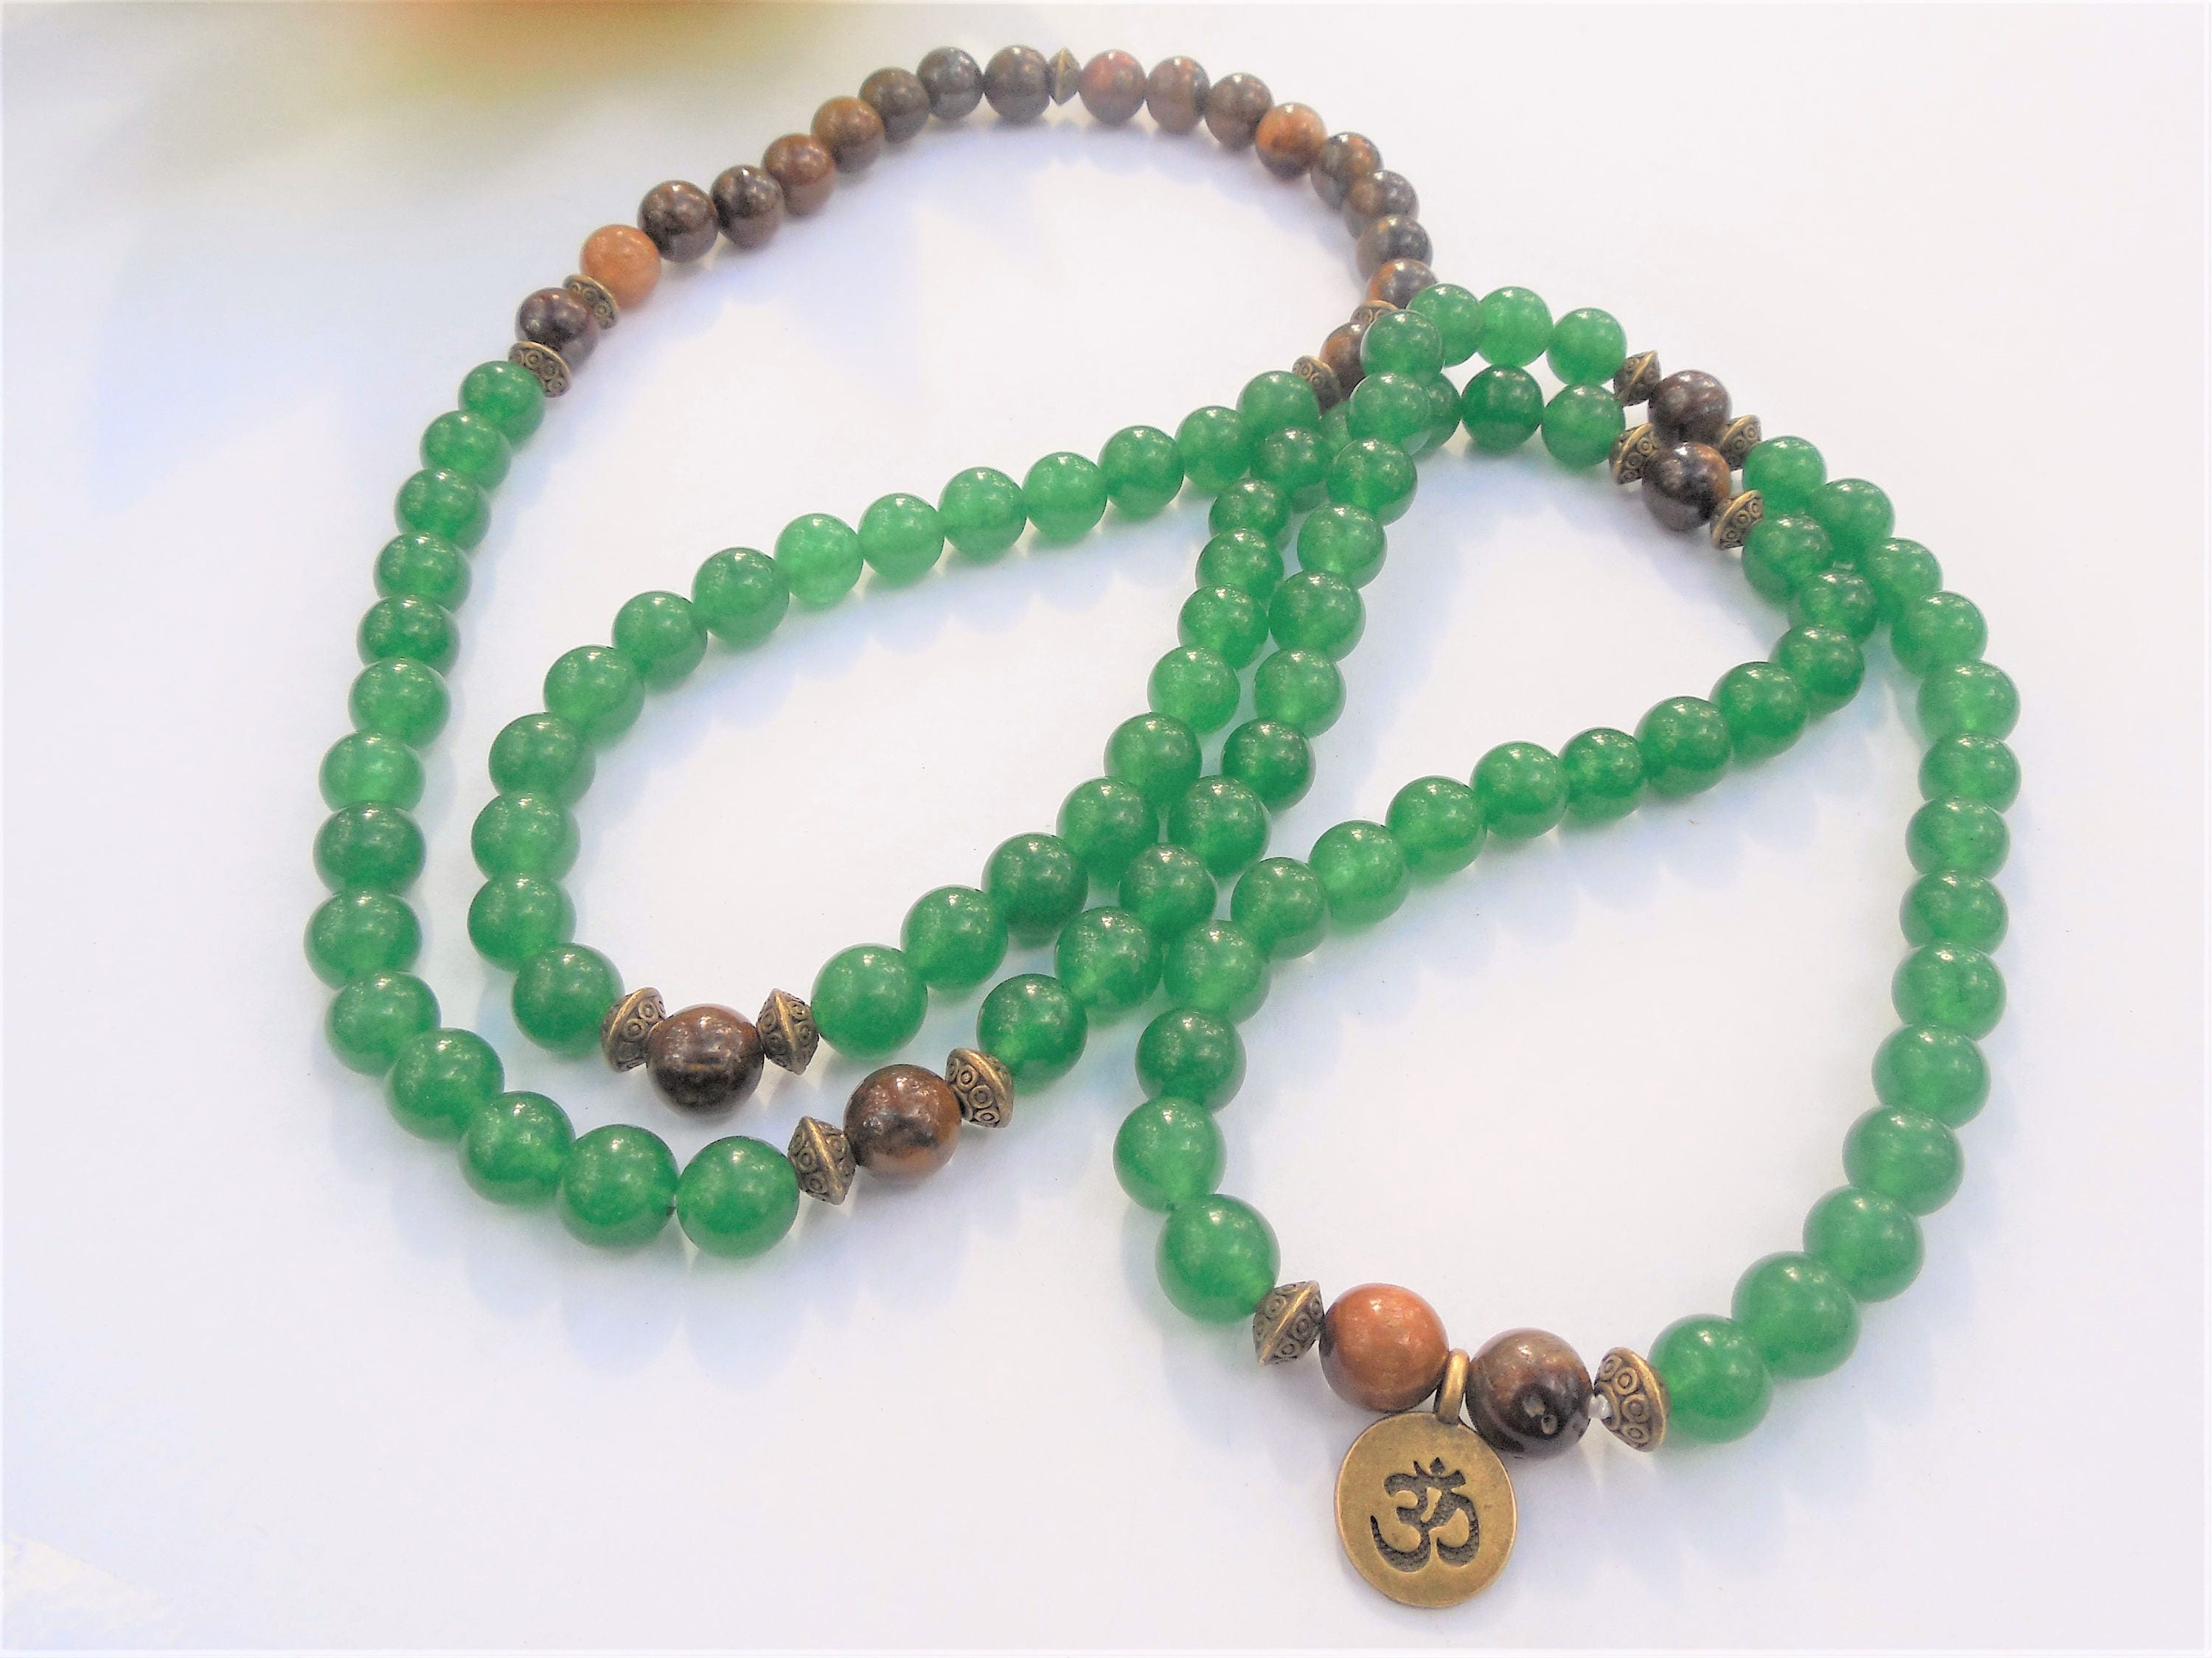 malas prickly flower prehnite mala japa healing pear beads amethyst lepidolite dsc jade collections necklace crystal